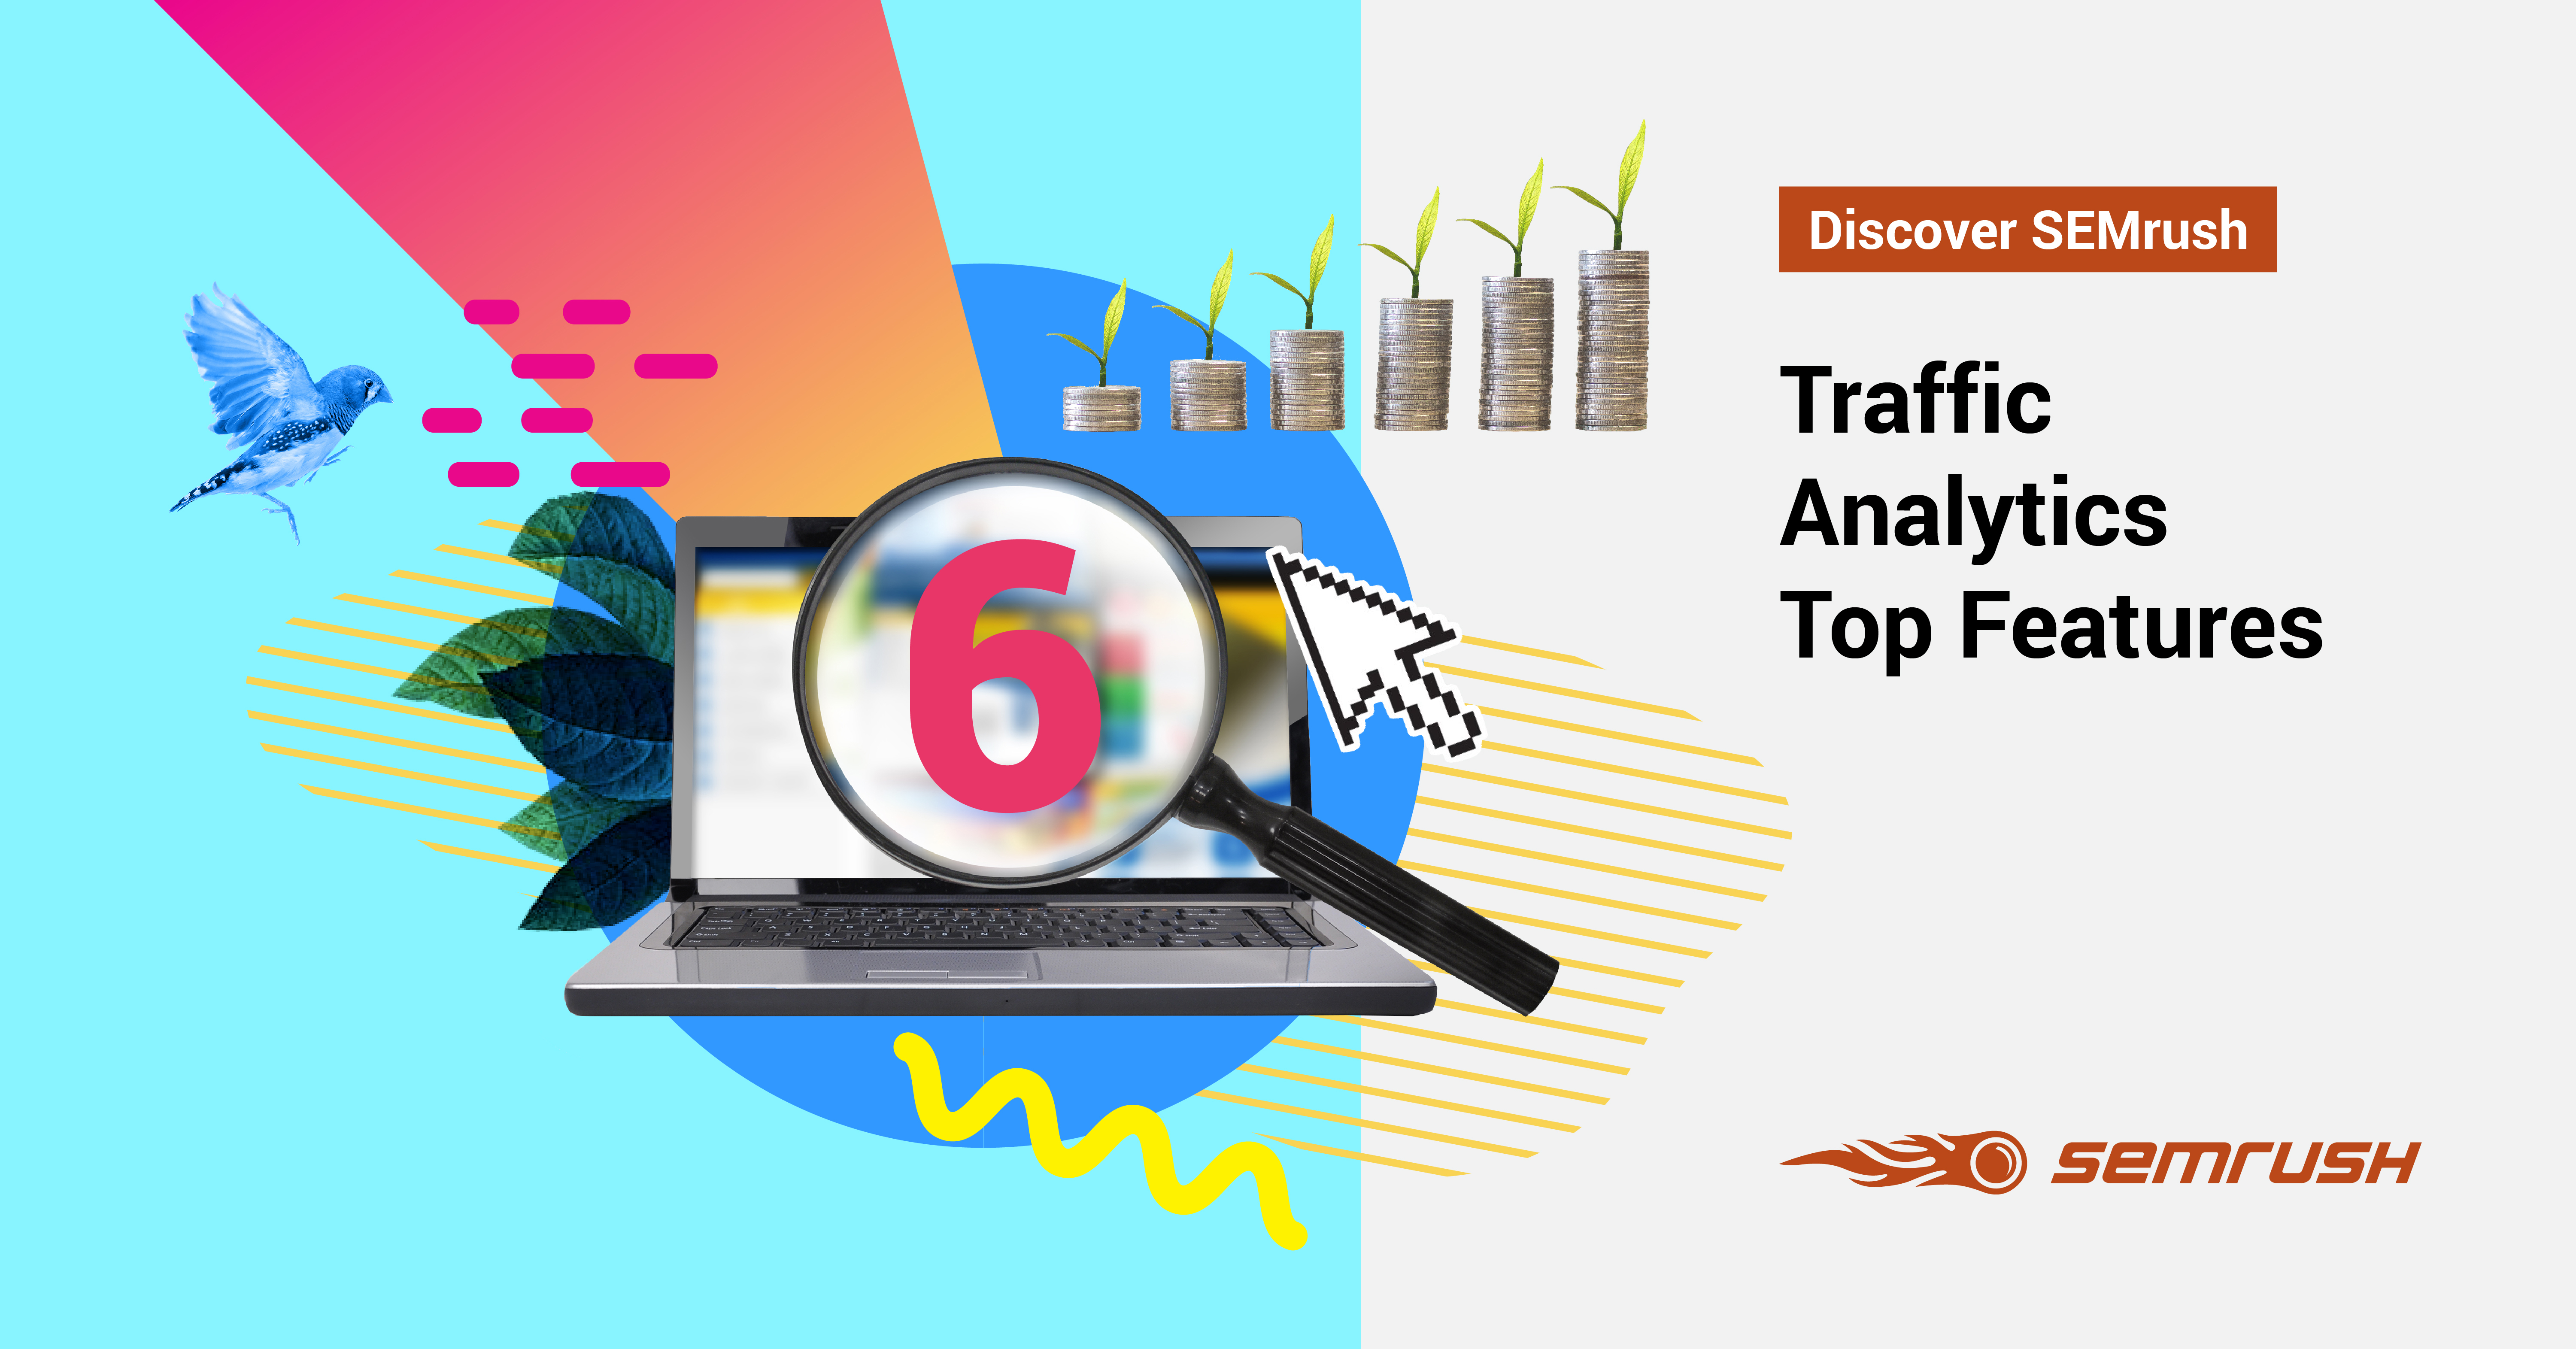 6 Things You Didn't Know about SEMrush Traffic Analytics